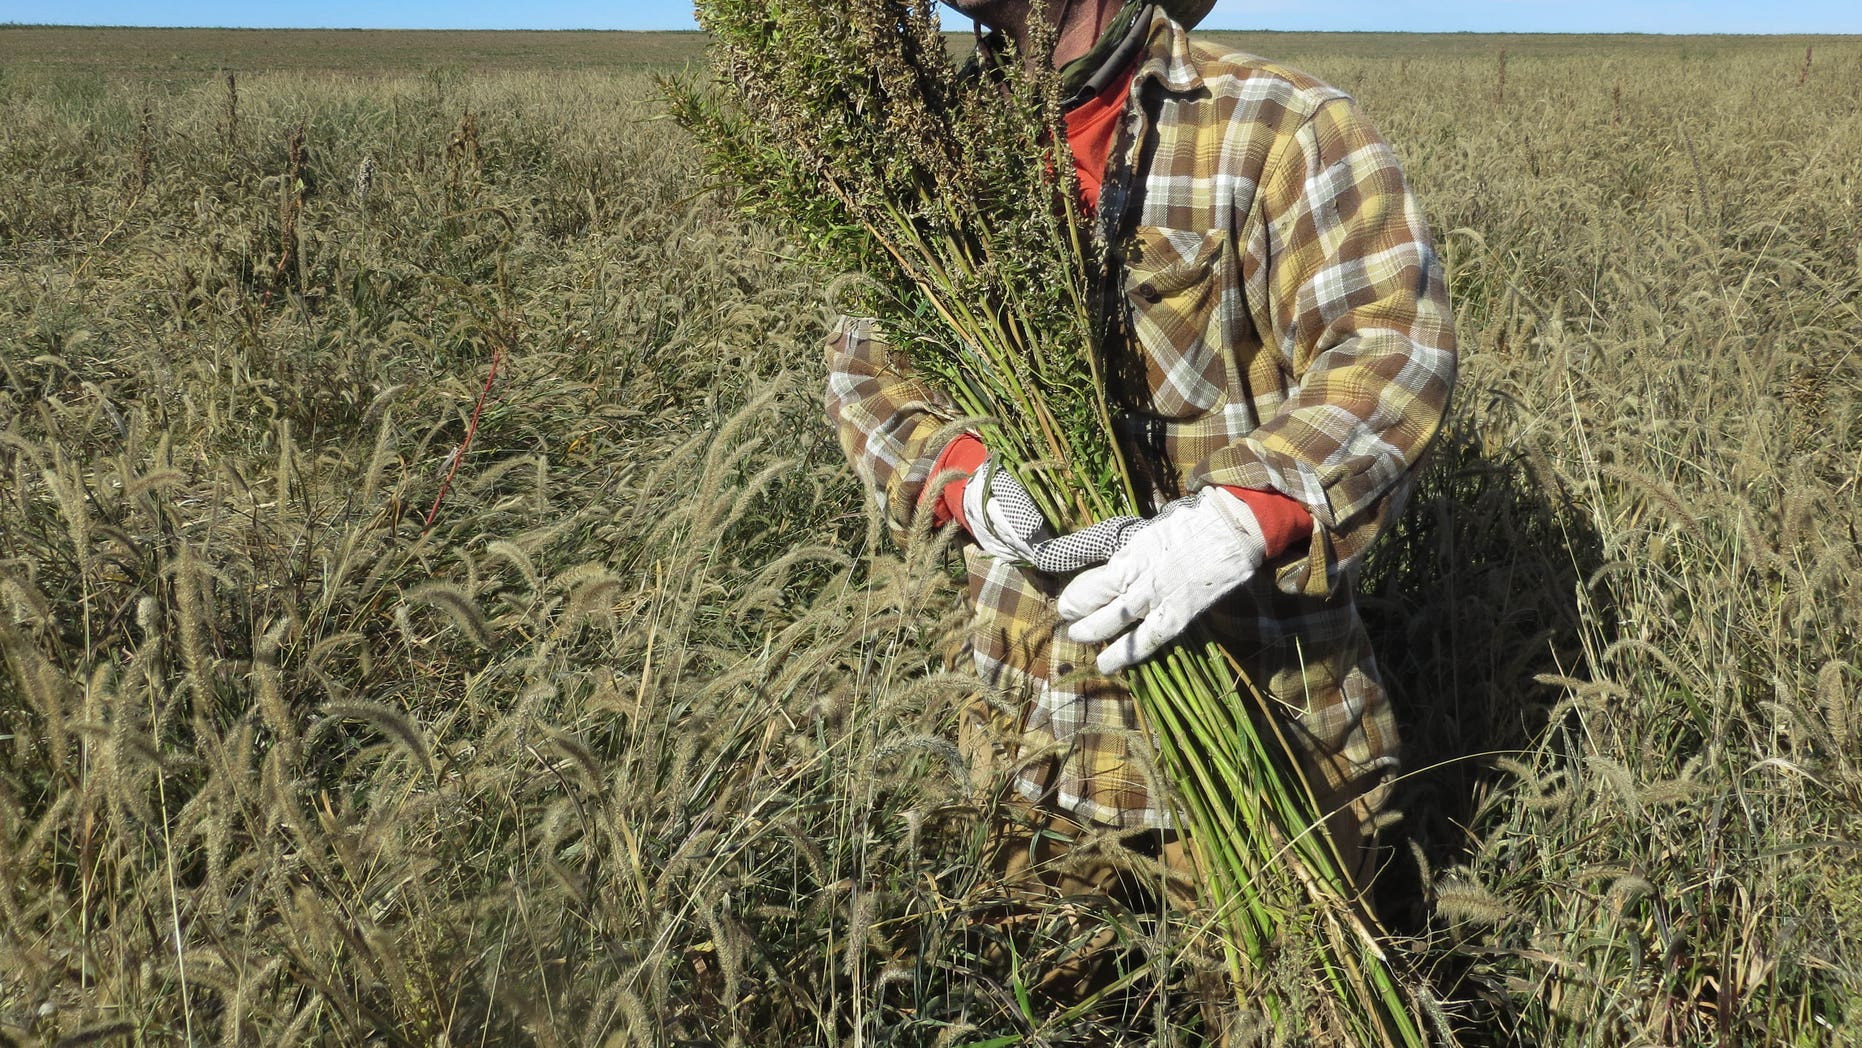 Oct. 5, 2013: In this photo, Derek Cross, a chef who specializes in cooking with hemp, helps harvest the plant in Springfield, Colo.